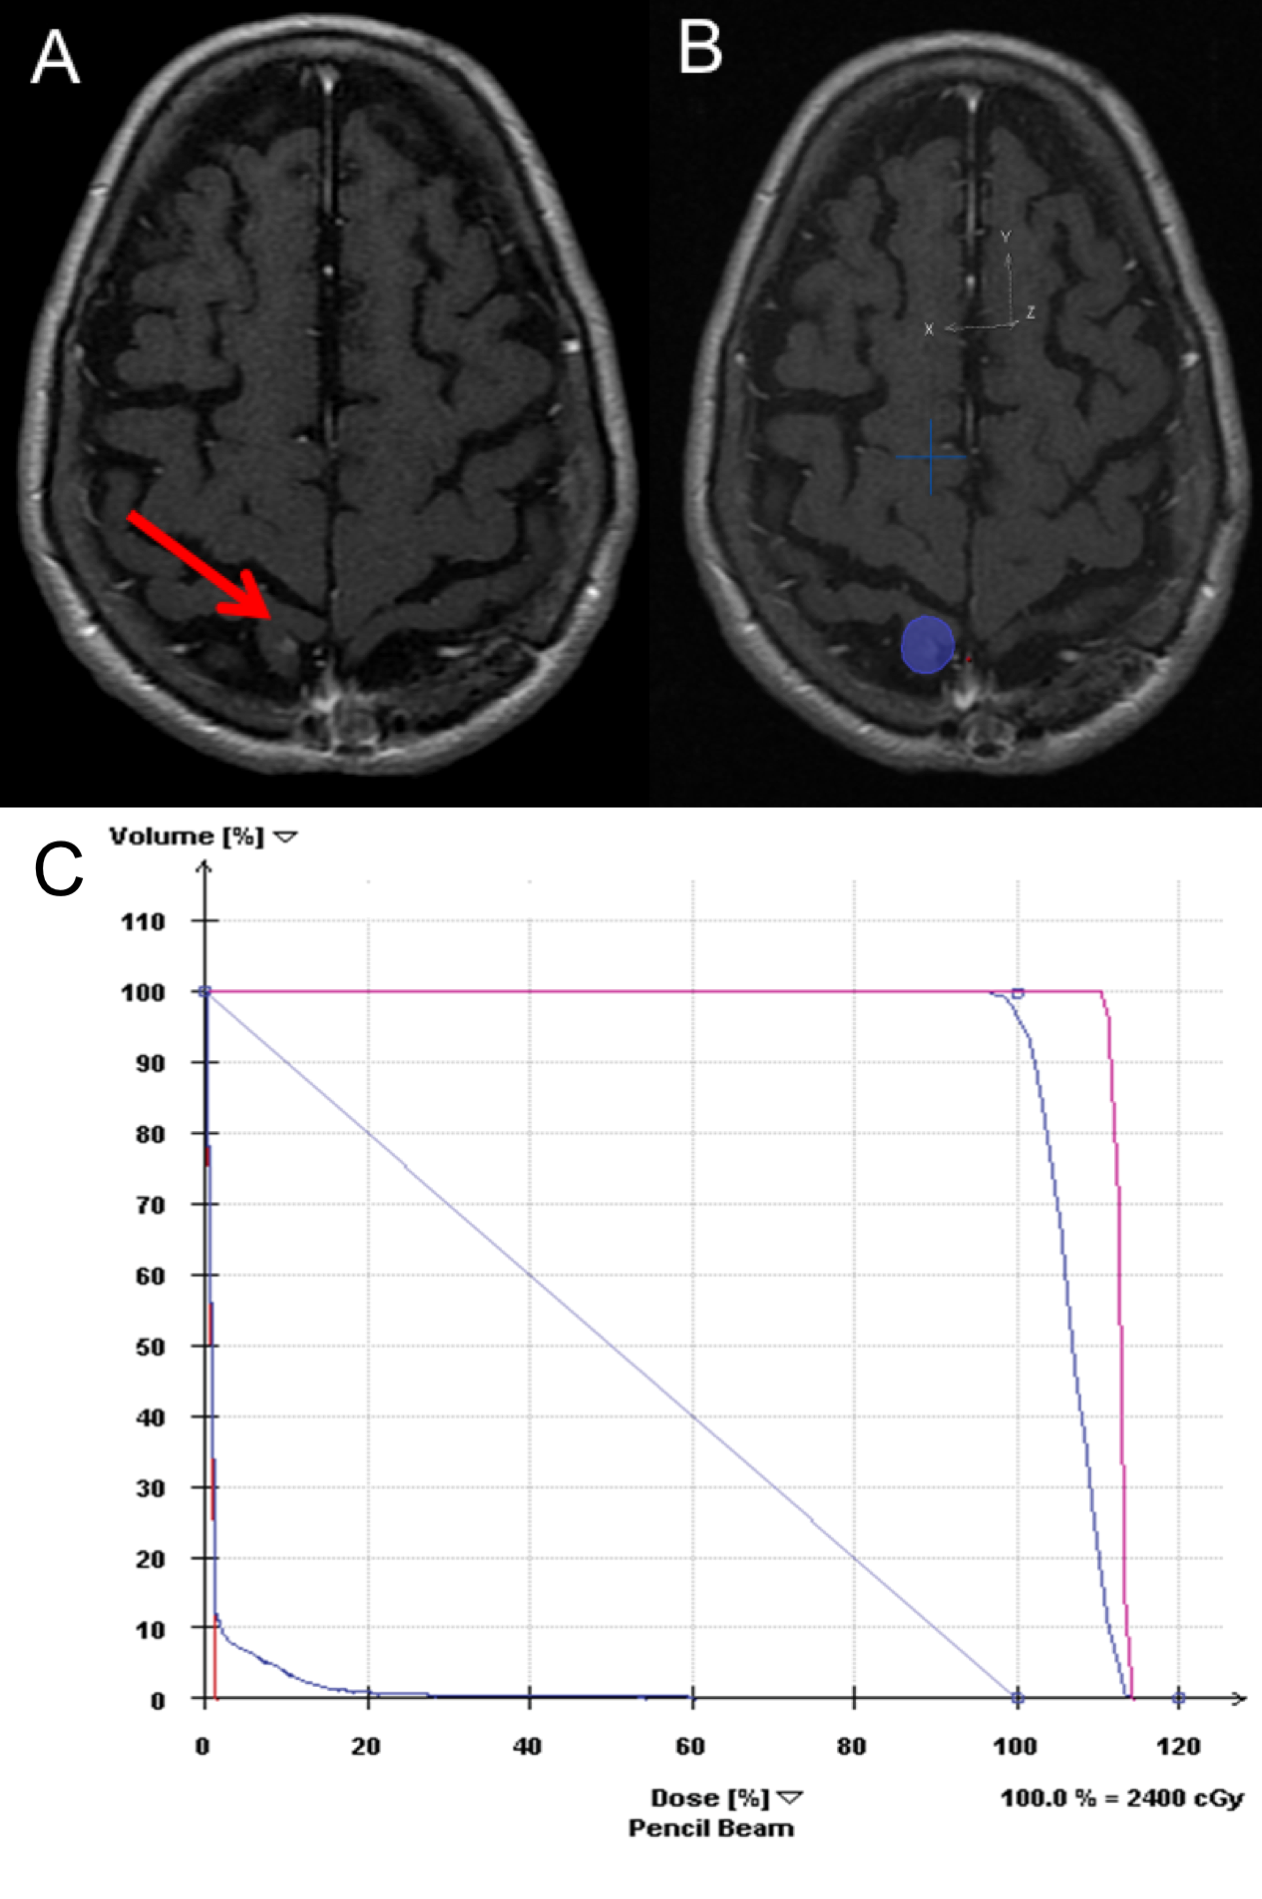 Cureus Excellent Outcomes In A Geriatric Patient With Multiple Brain Metastases Undergoing Surgical Resection With Cesium 131 Implantation And Stereotactic Radiosurgery A gyrus of the parietal lobe located just posterior to the central sulcus, lying parallel to the precentral gyrus of the temporal lobe, and comprising the somatosensory. doi org